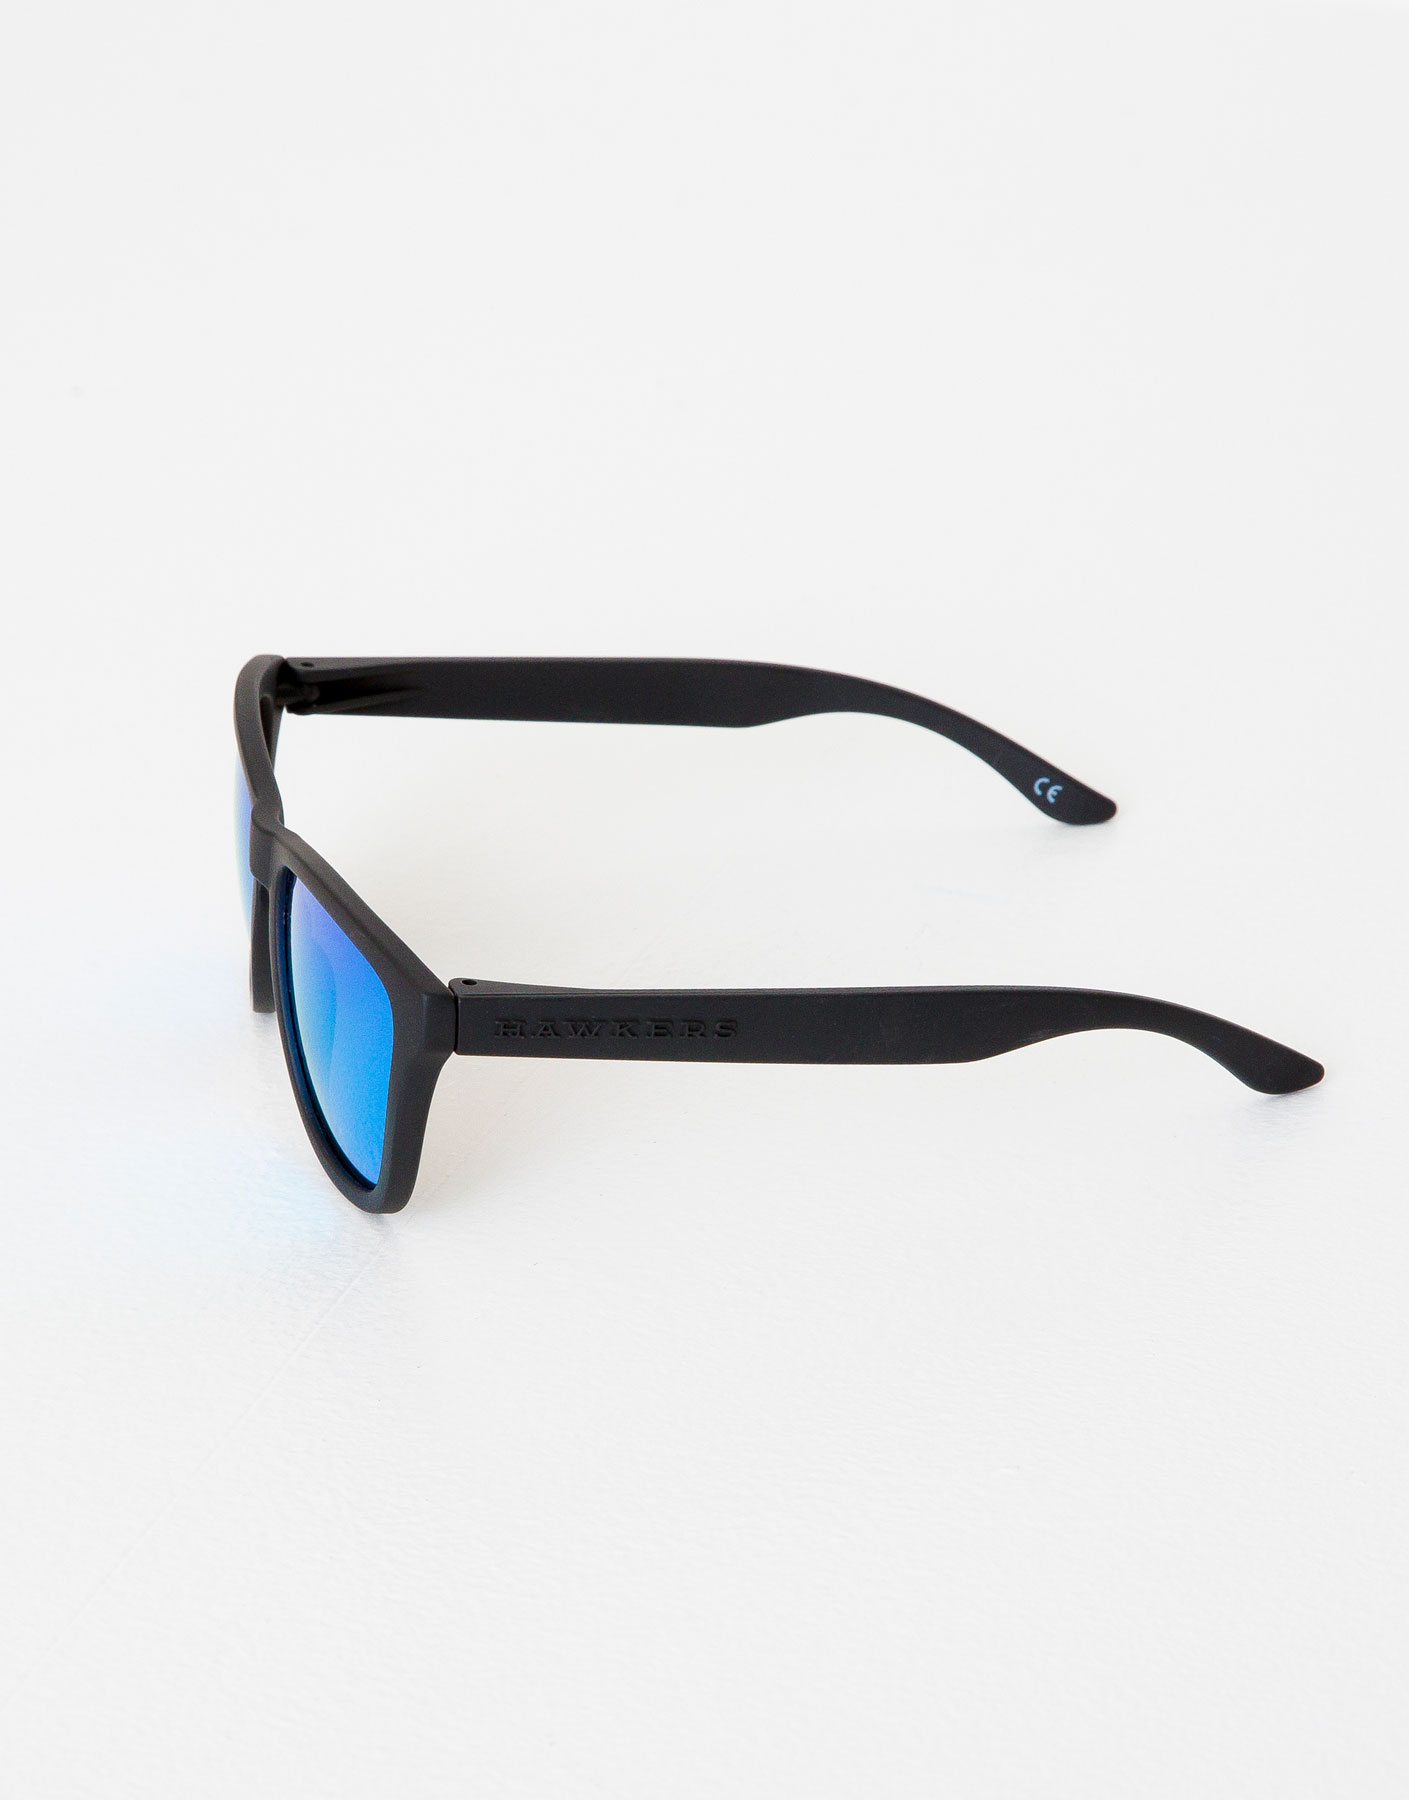 Lunettes de soleil hawkers carbon black clear blue one